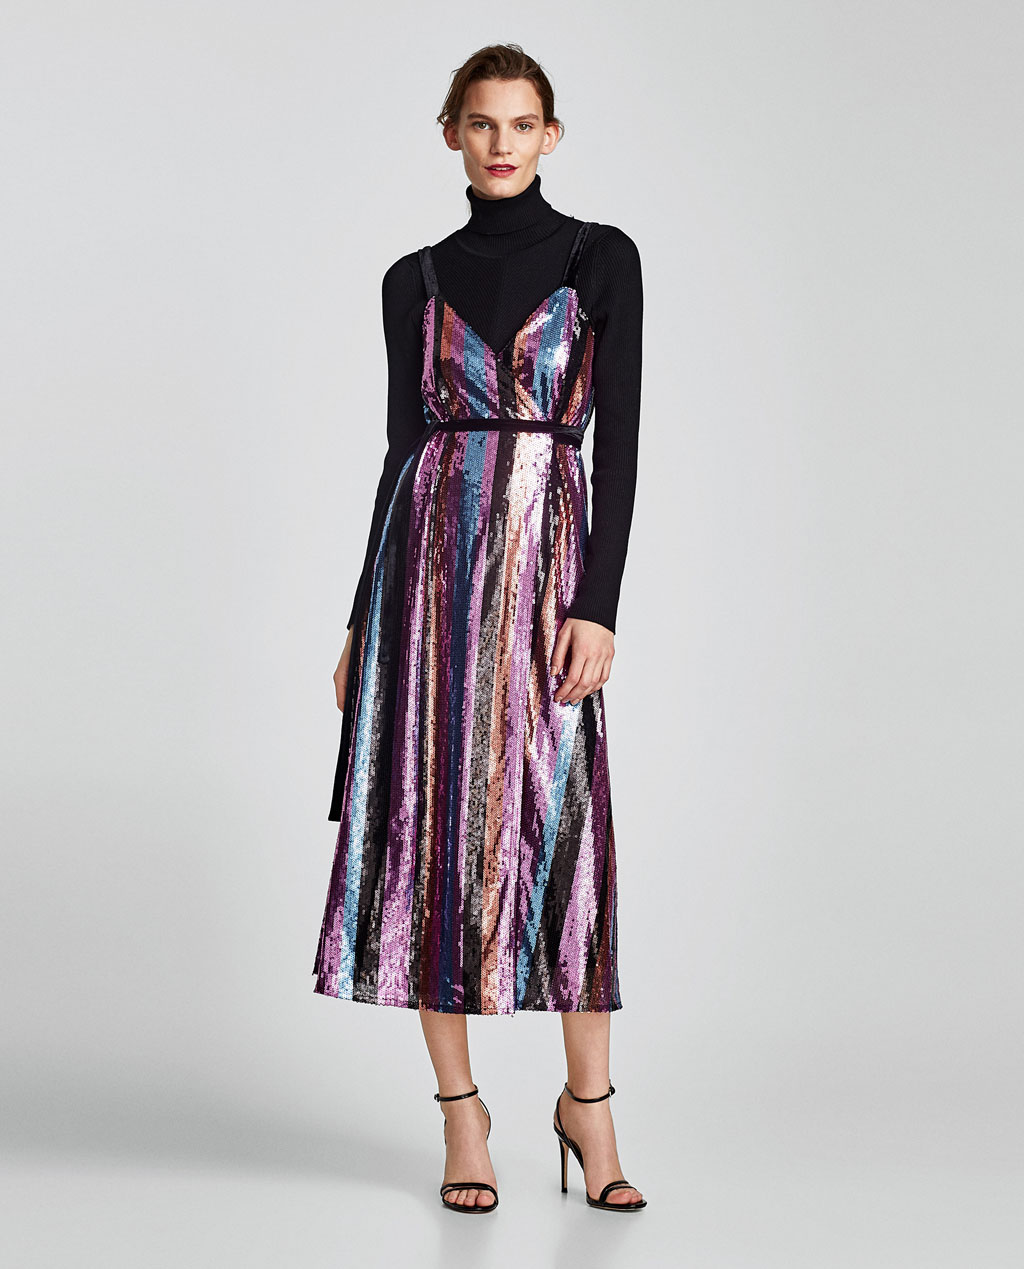 Zara daytime disco dress